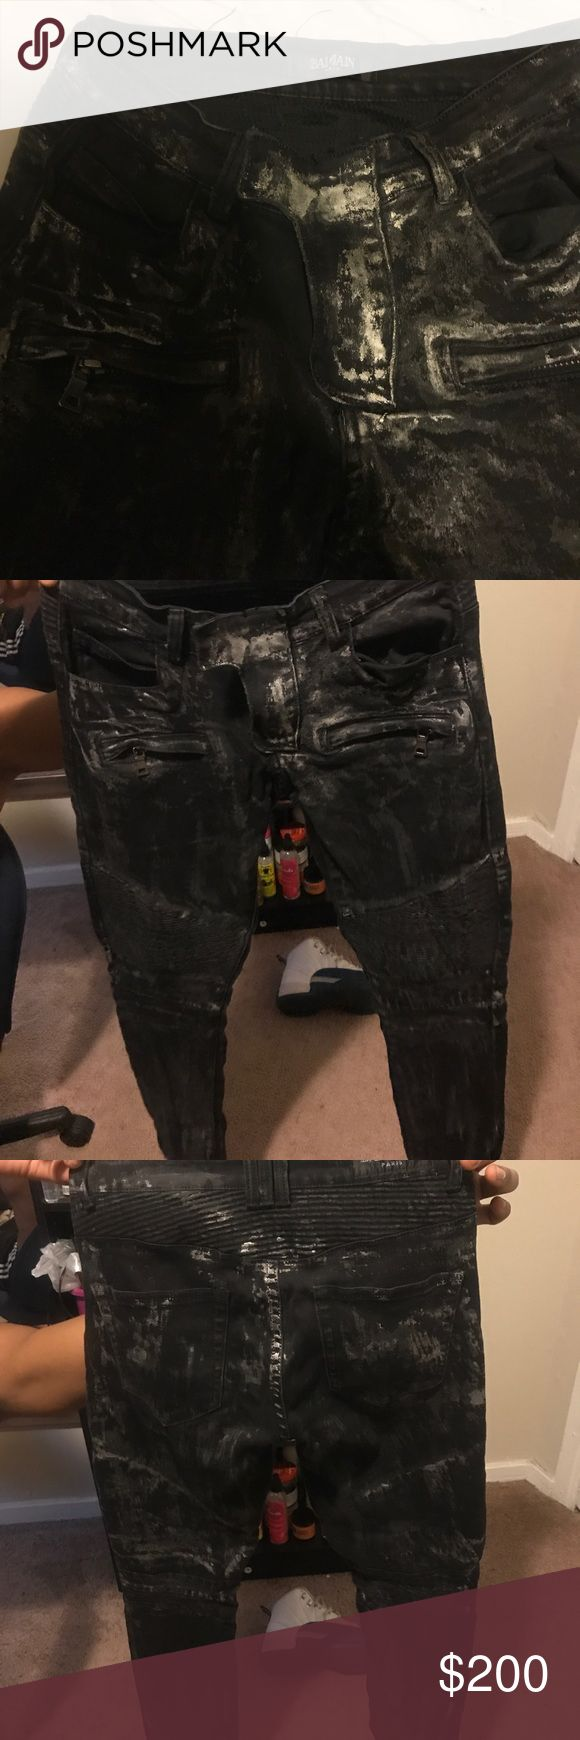 Mens balmain jeans Black , grey , and chrome colored jeans worn a couple times , asking price or best offer Balmain Jeans Skinny